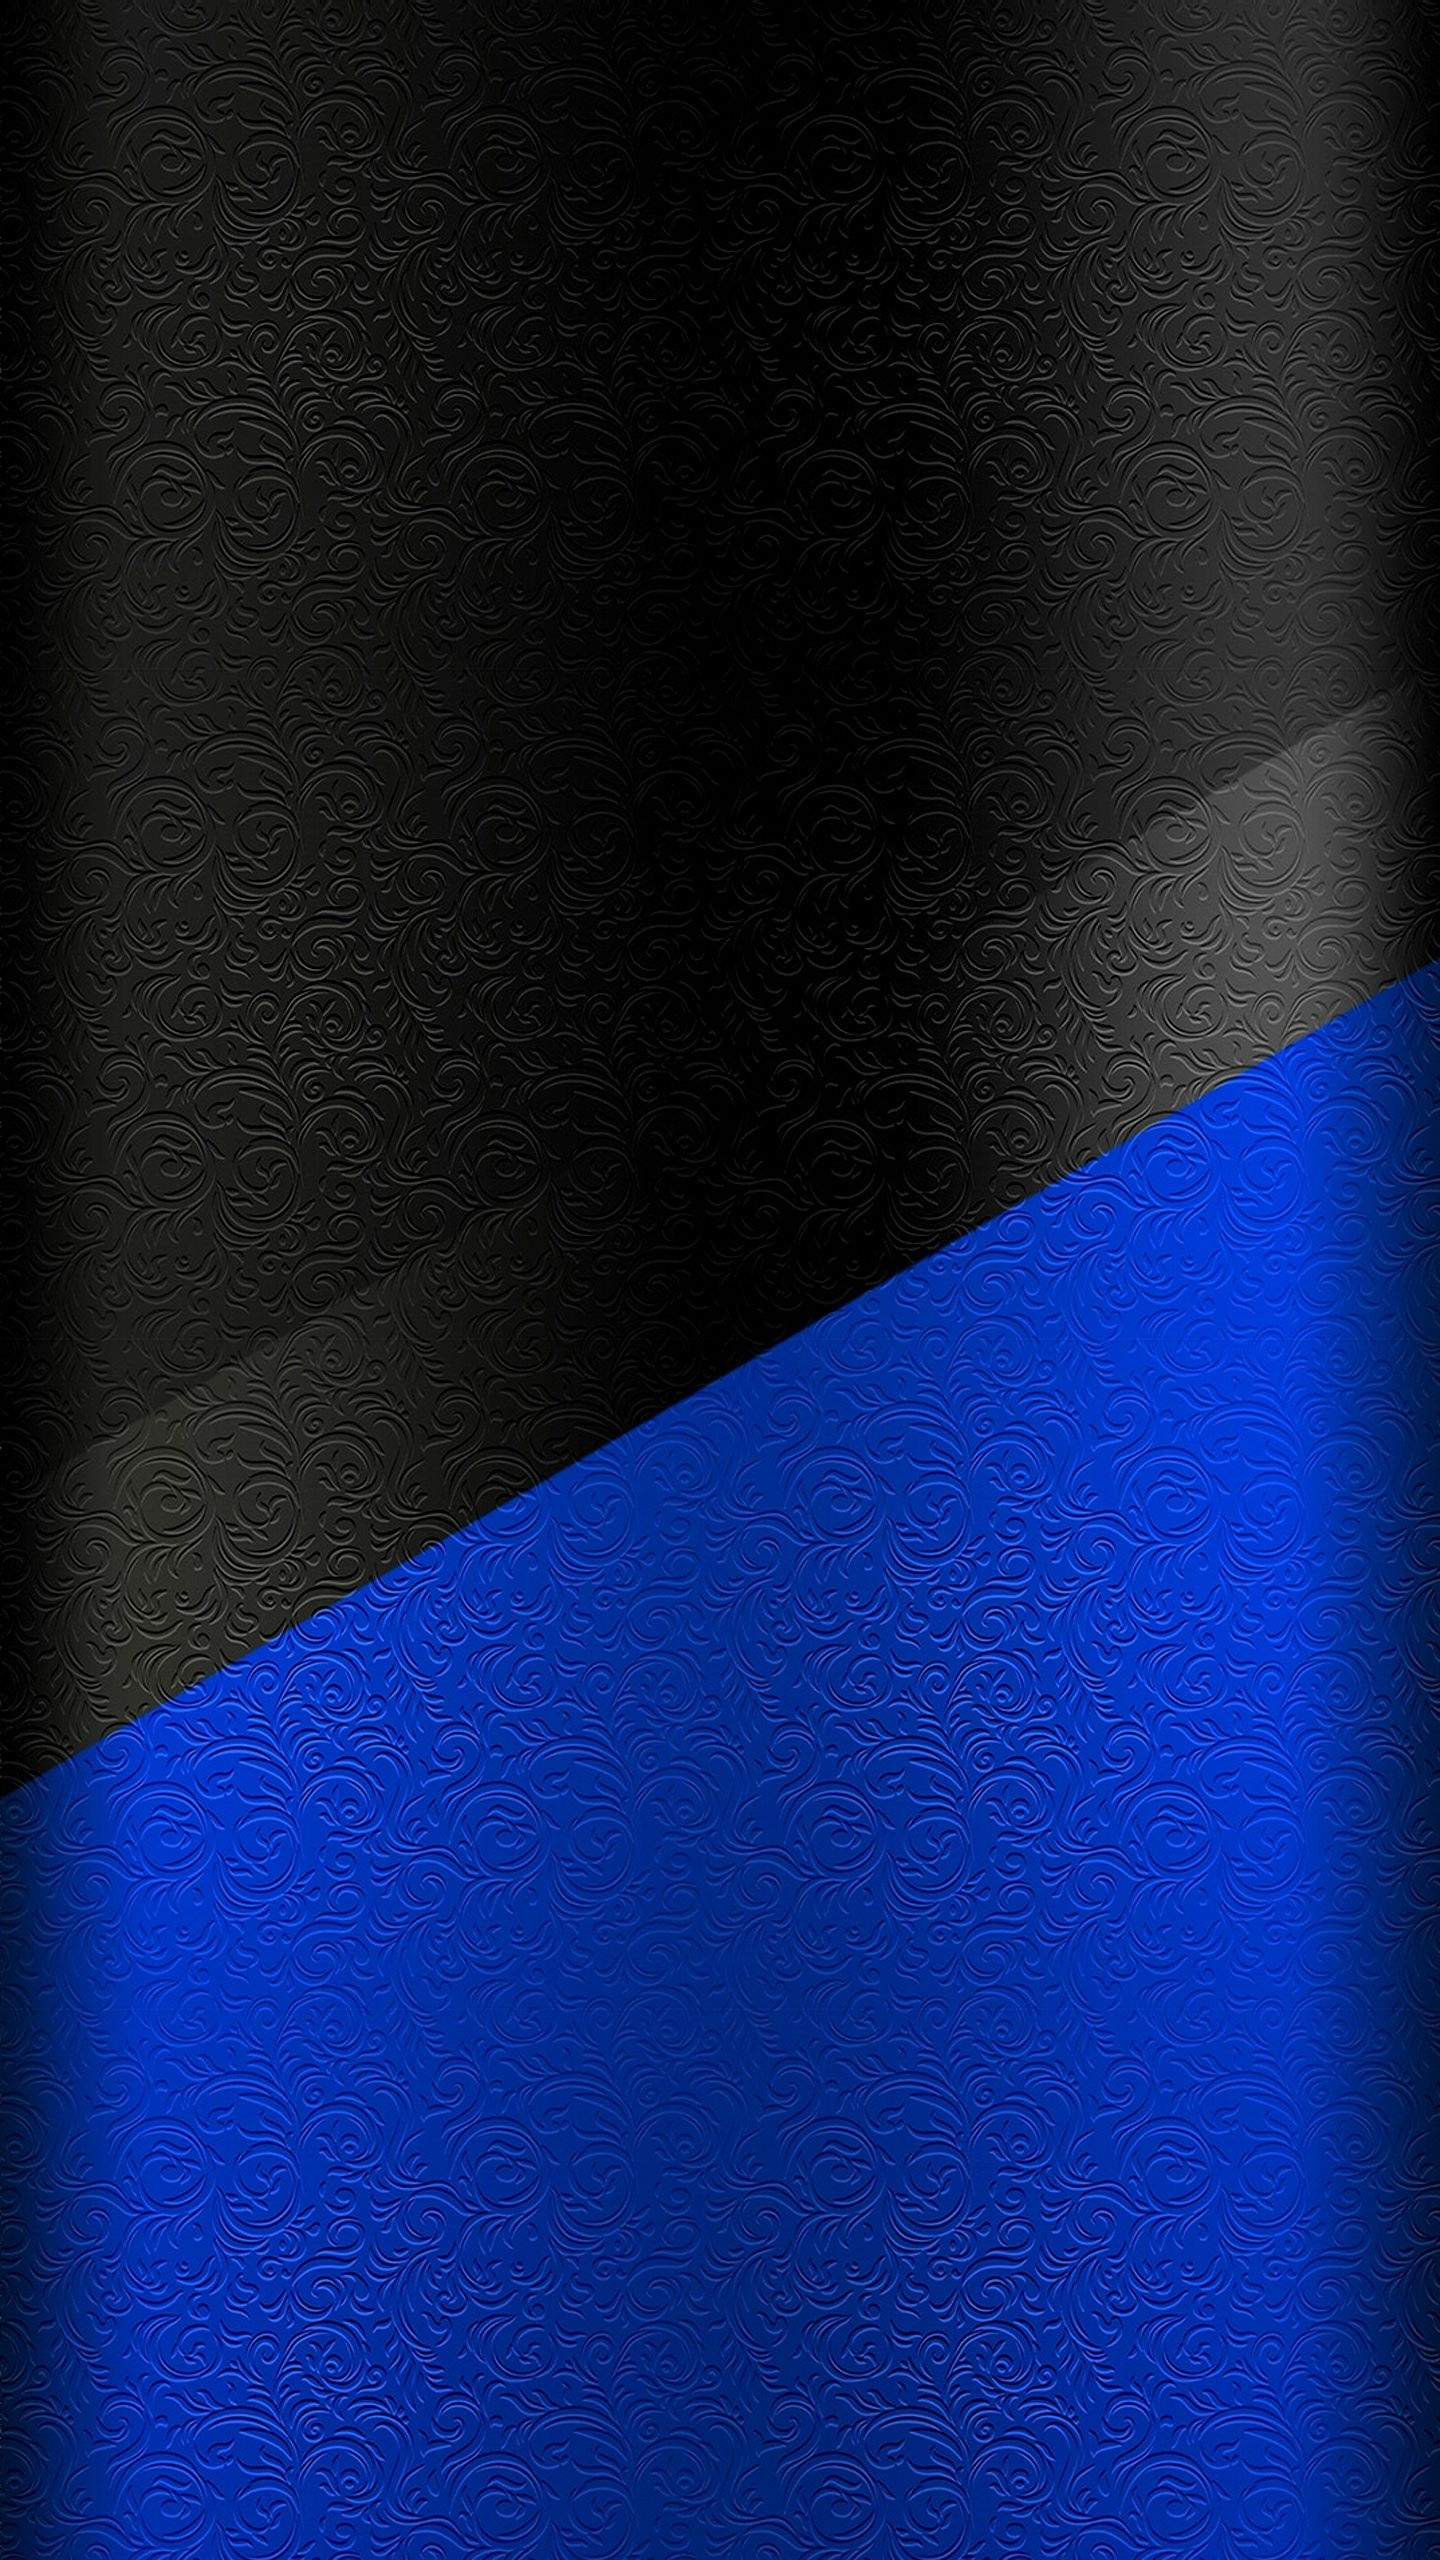 Dark S7 Edge Wallpaper 01   Black and Blue Floral Pattern Floral 1440x2560